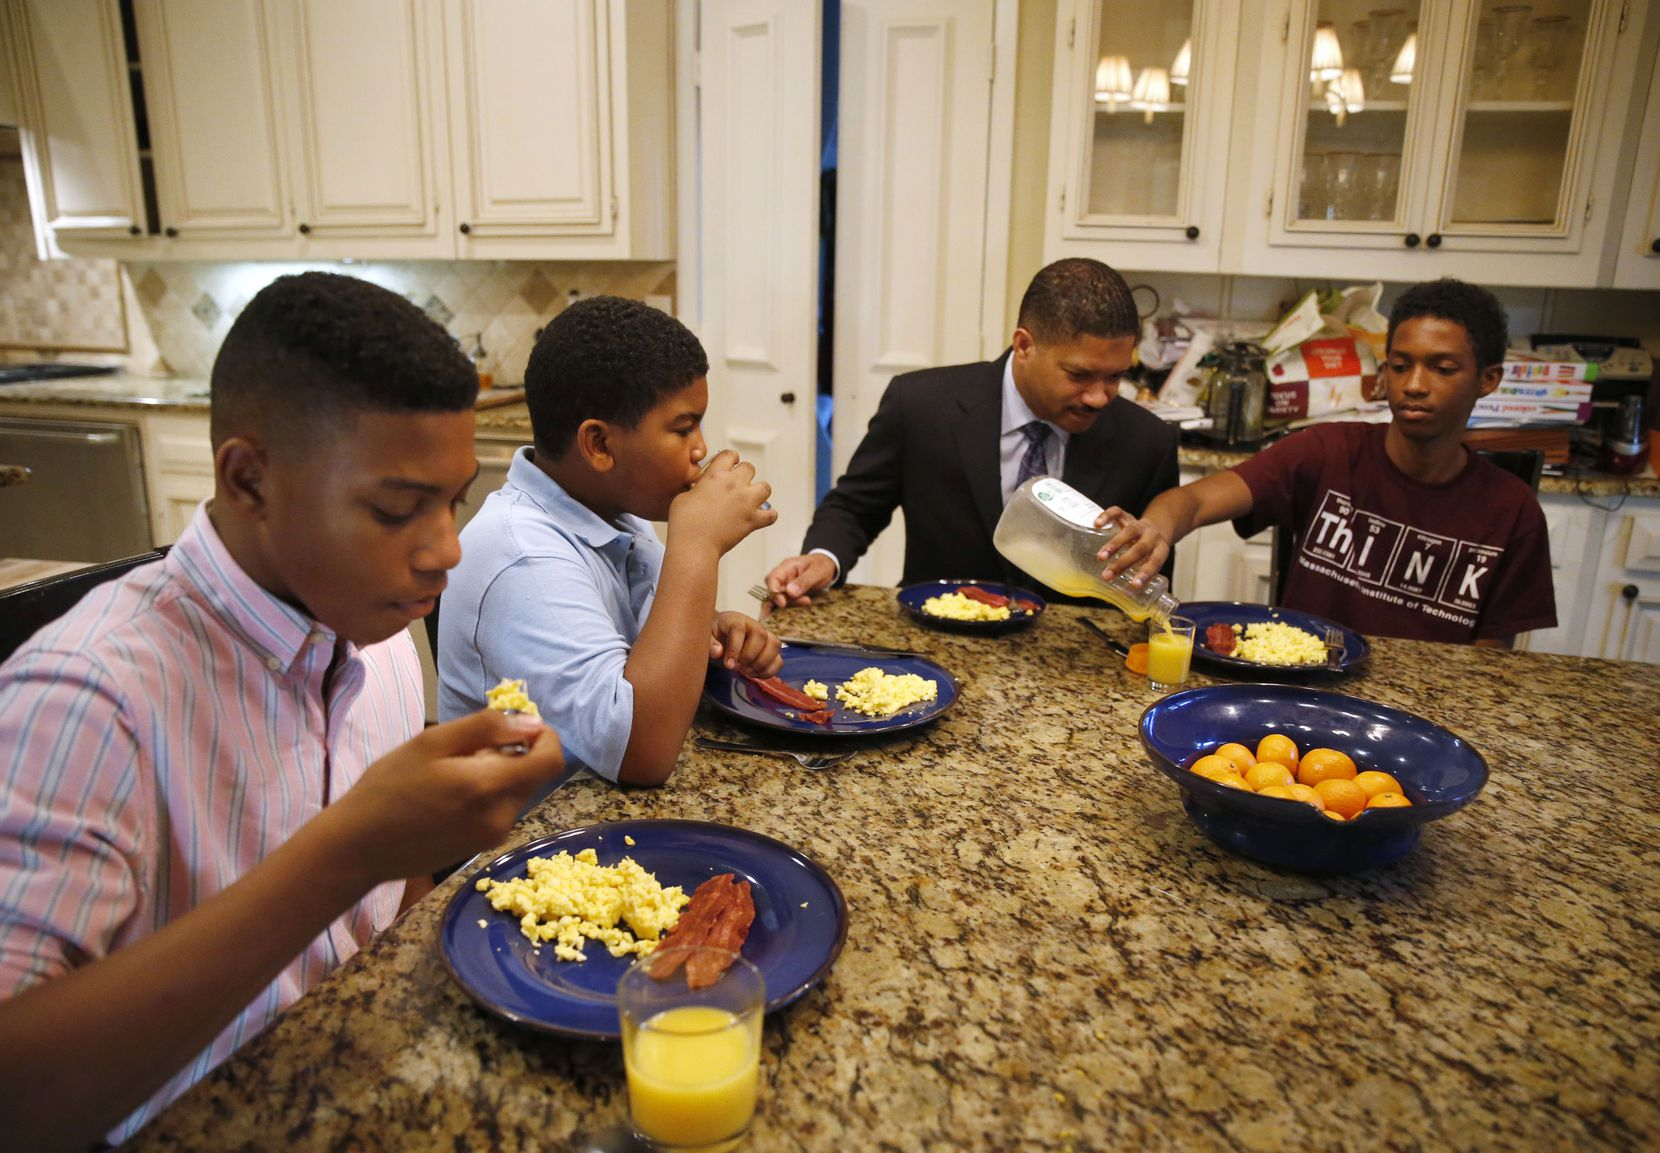 From left, William Waters, Christopher Waters and Joshua Waters eat breakfast with their father James, second from right, at their home in Dallas before heading off to school. (Vernon Bryant/Staff Photographer)